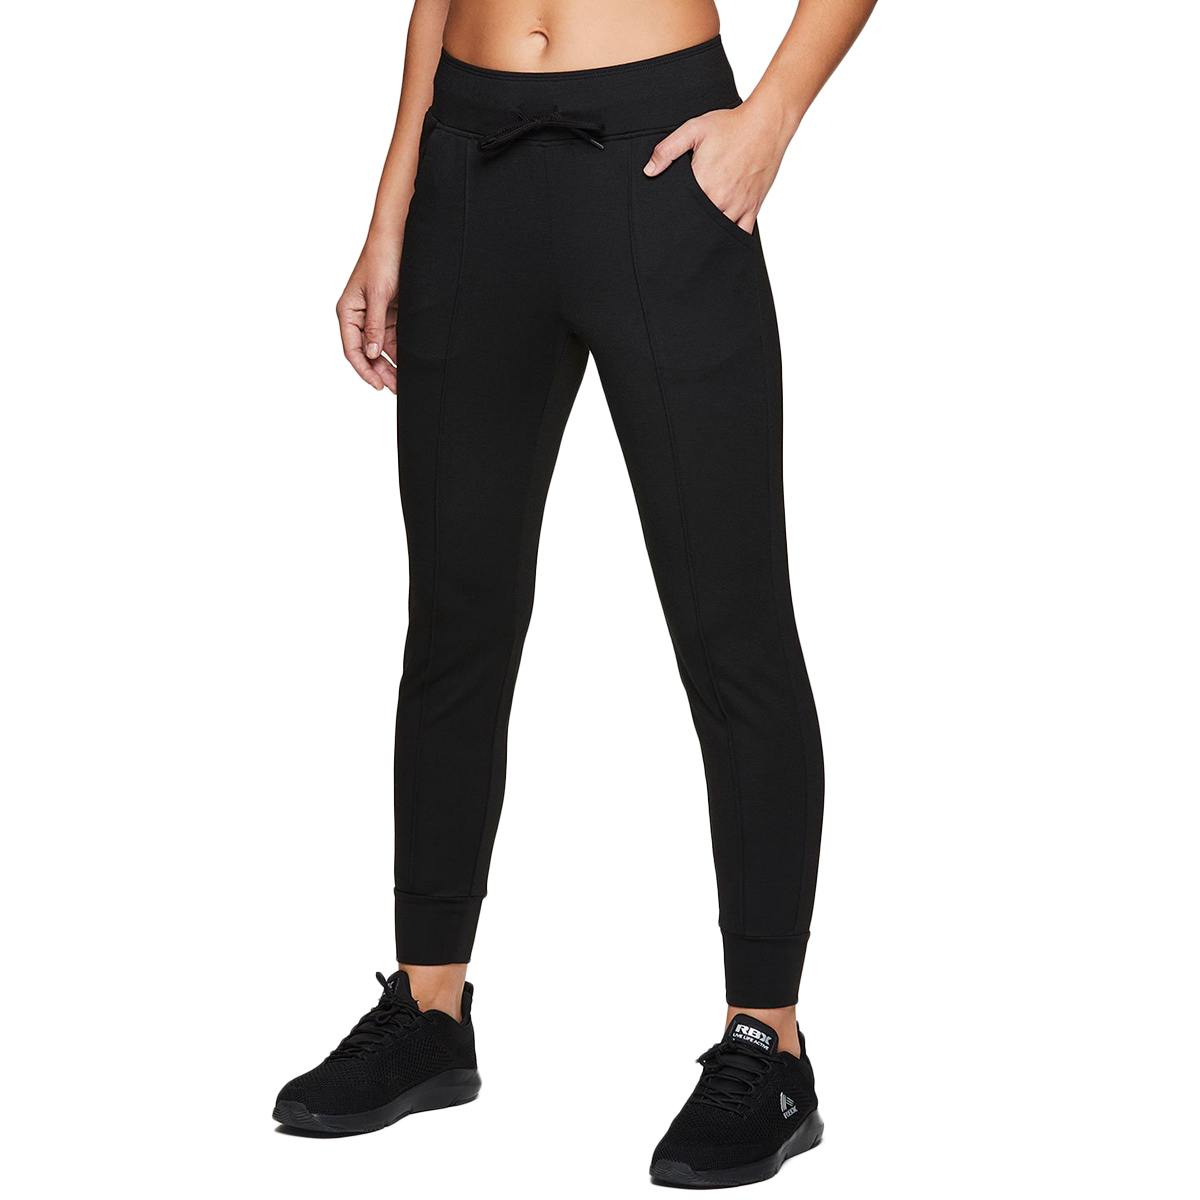 RBX Women's Cuffed Fleece Jogger Sweatpants - Black, L